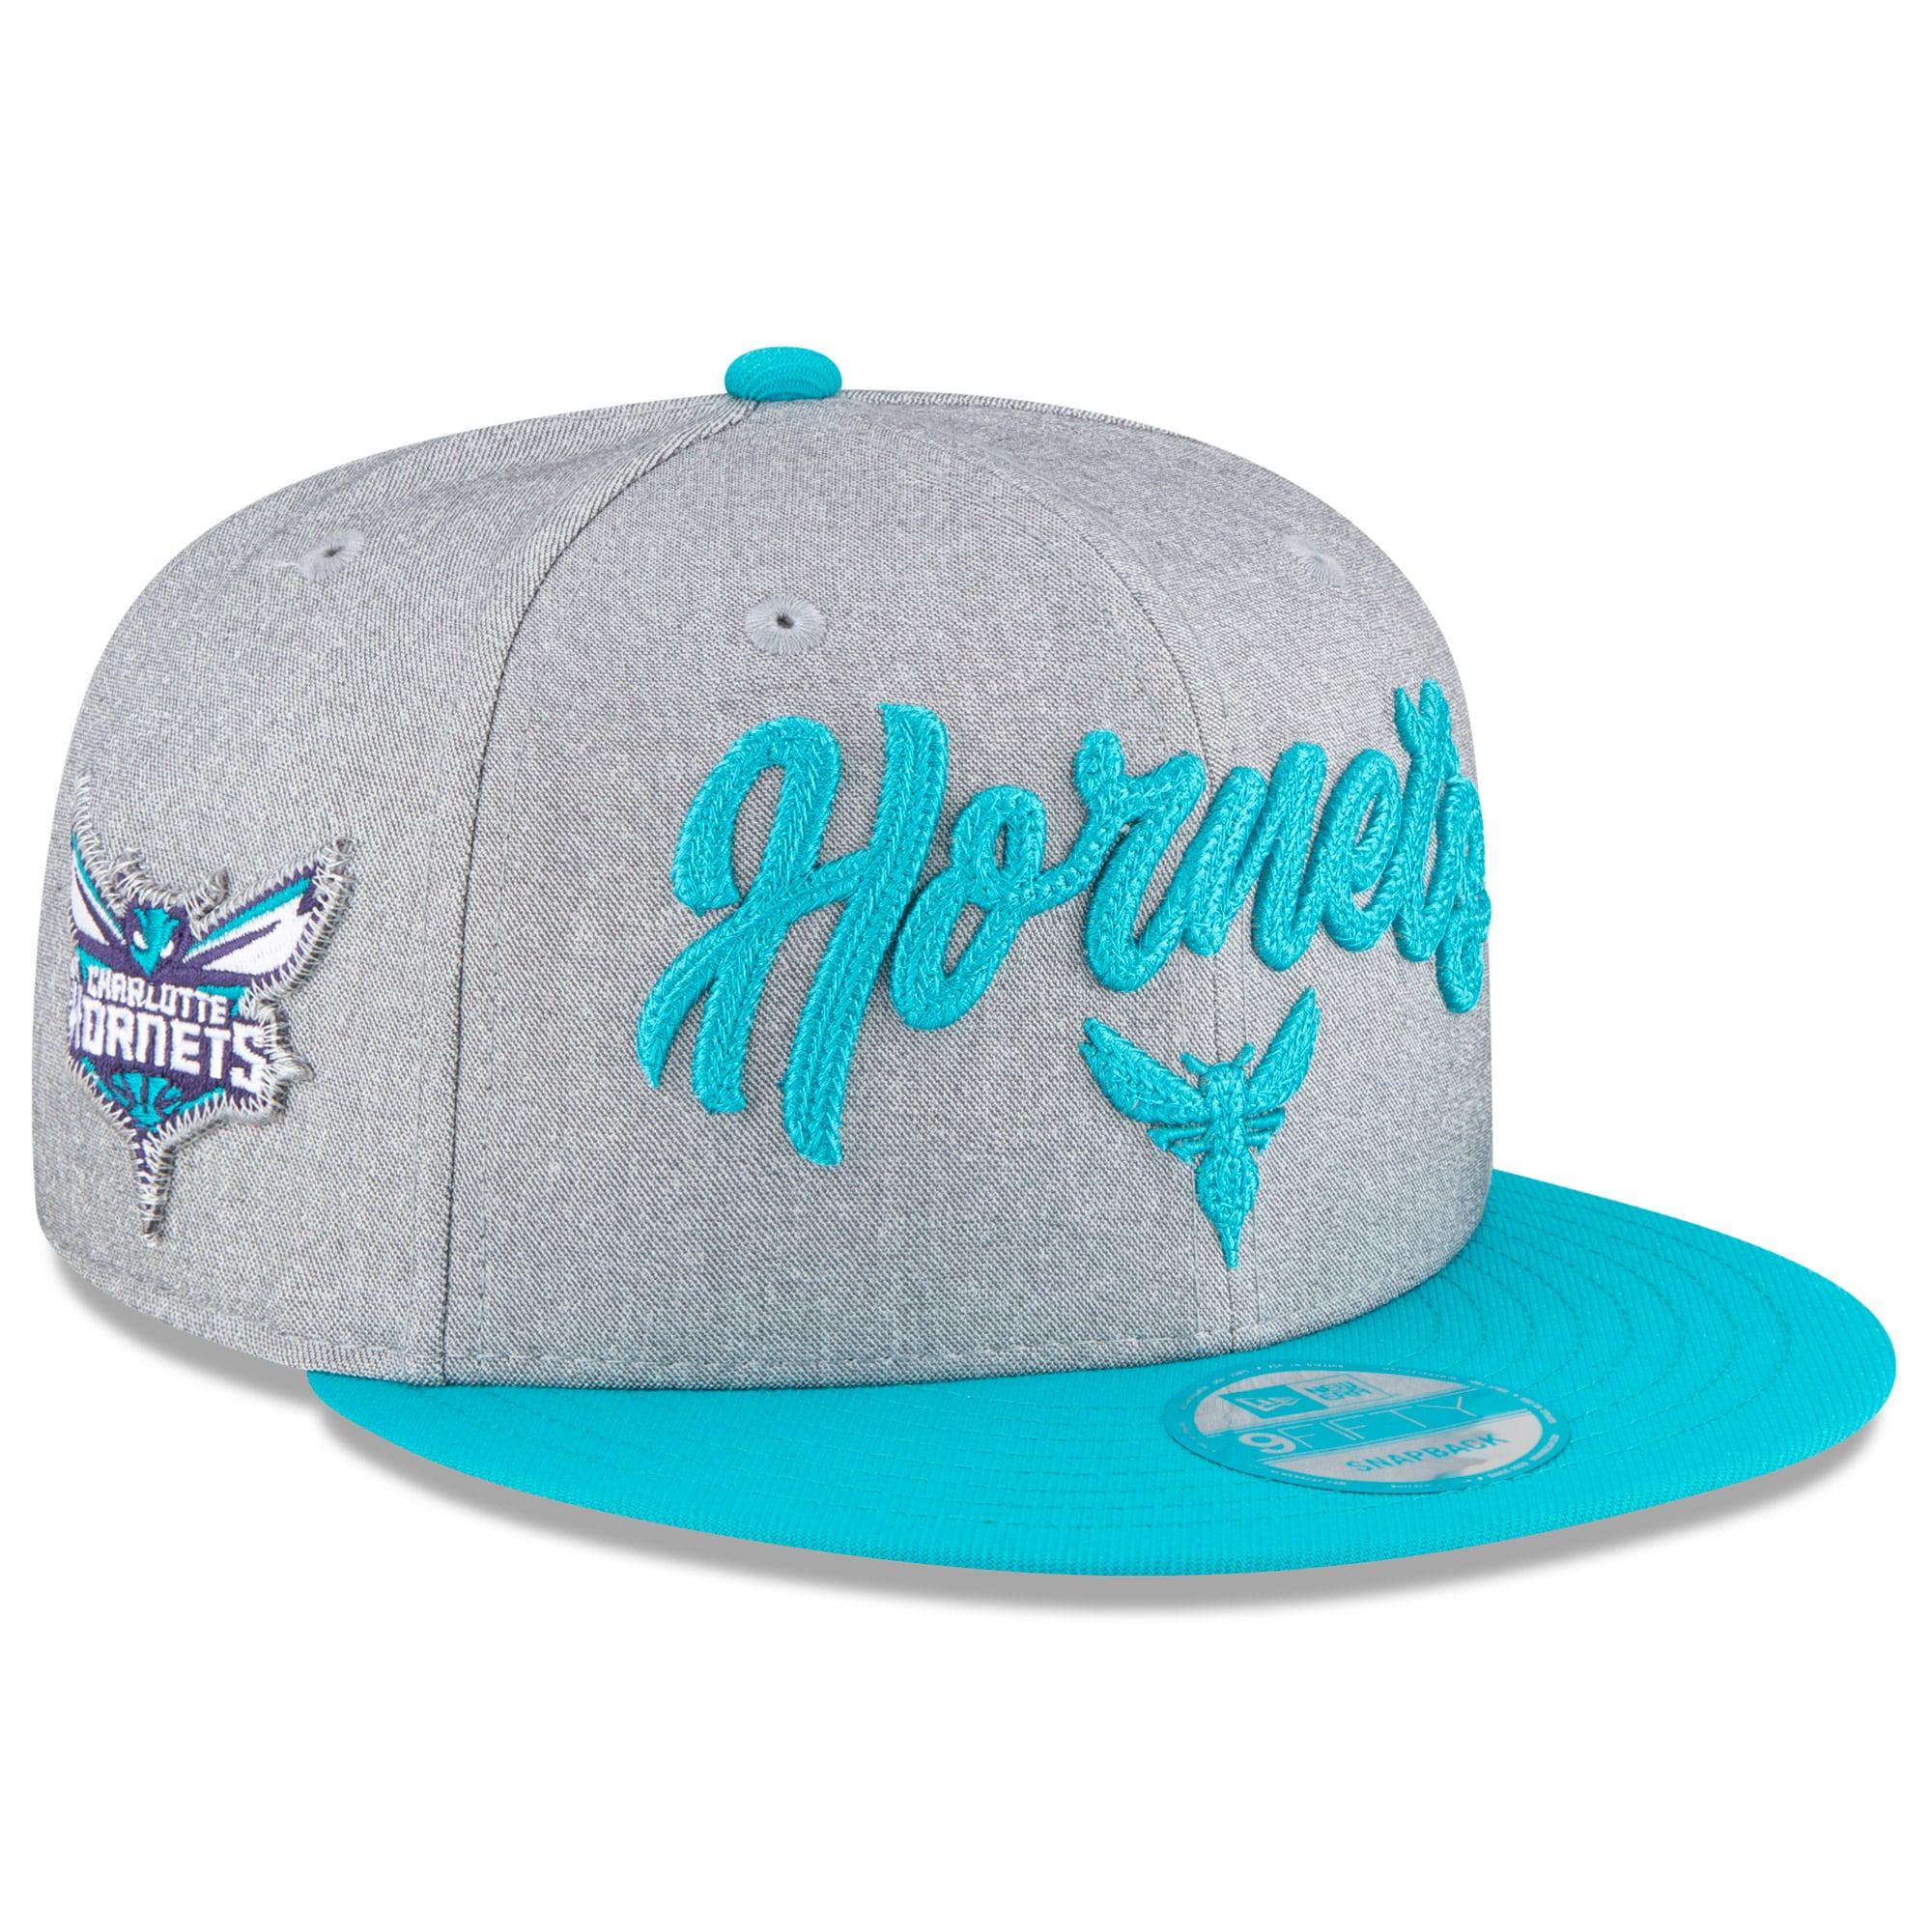 Charlotte Hornets New Era 2020 NBA Draft Official On-Stage 9FIFTY Snapback Adjustable Hat - Heather Gray/Teal